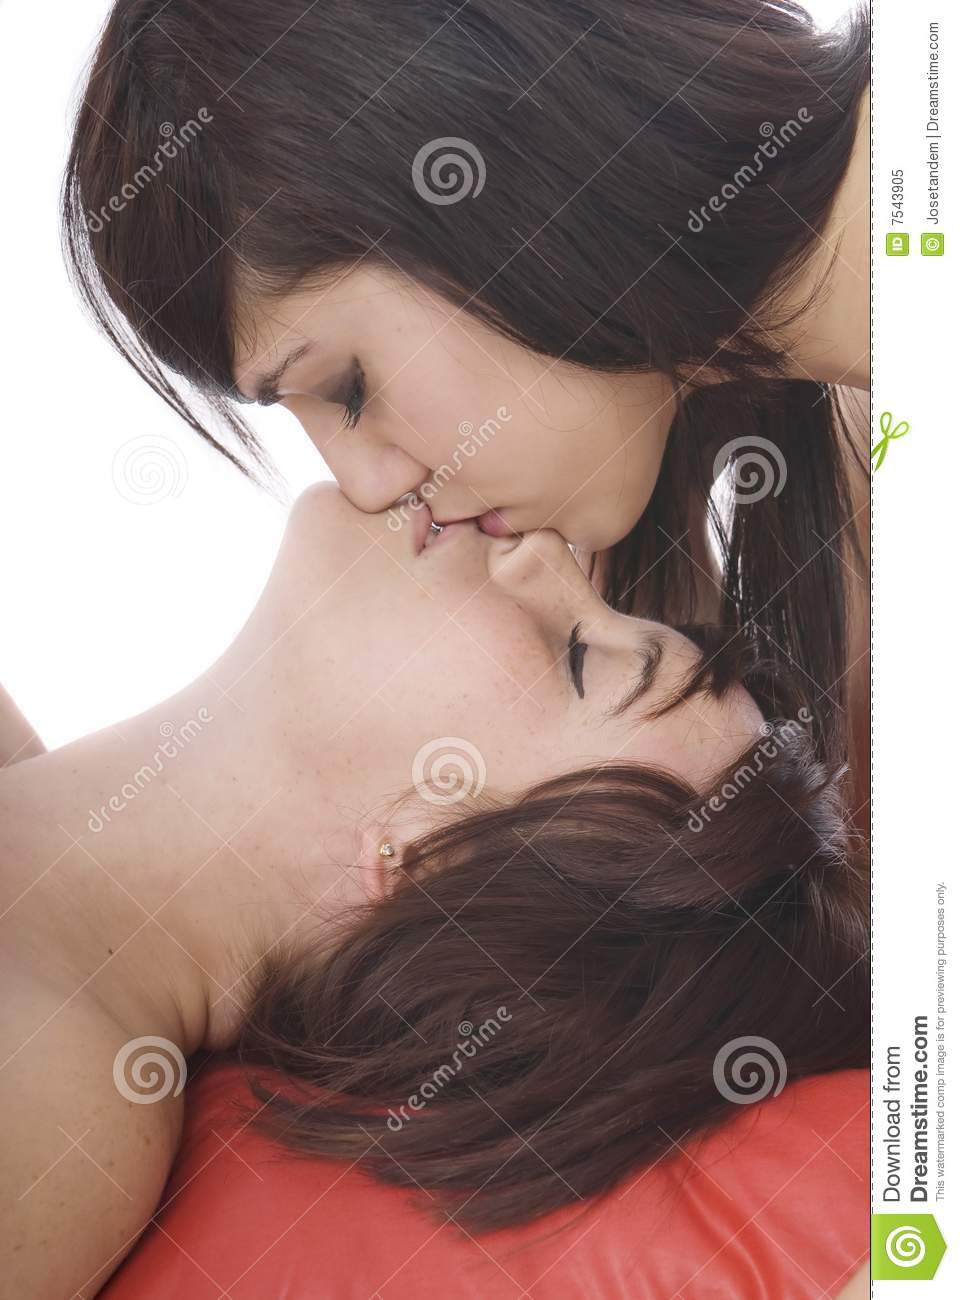 single lesbian women in kaktovik Lesbian dating  meet lesbian singles on guardian soulmates  like minded women find a woman that you truly connect with guardian soulmates features thousands of lesbian singles worth getting to know dating in the city  never be stuck on ideas on where to take your date.